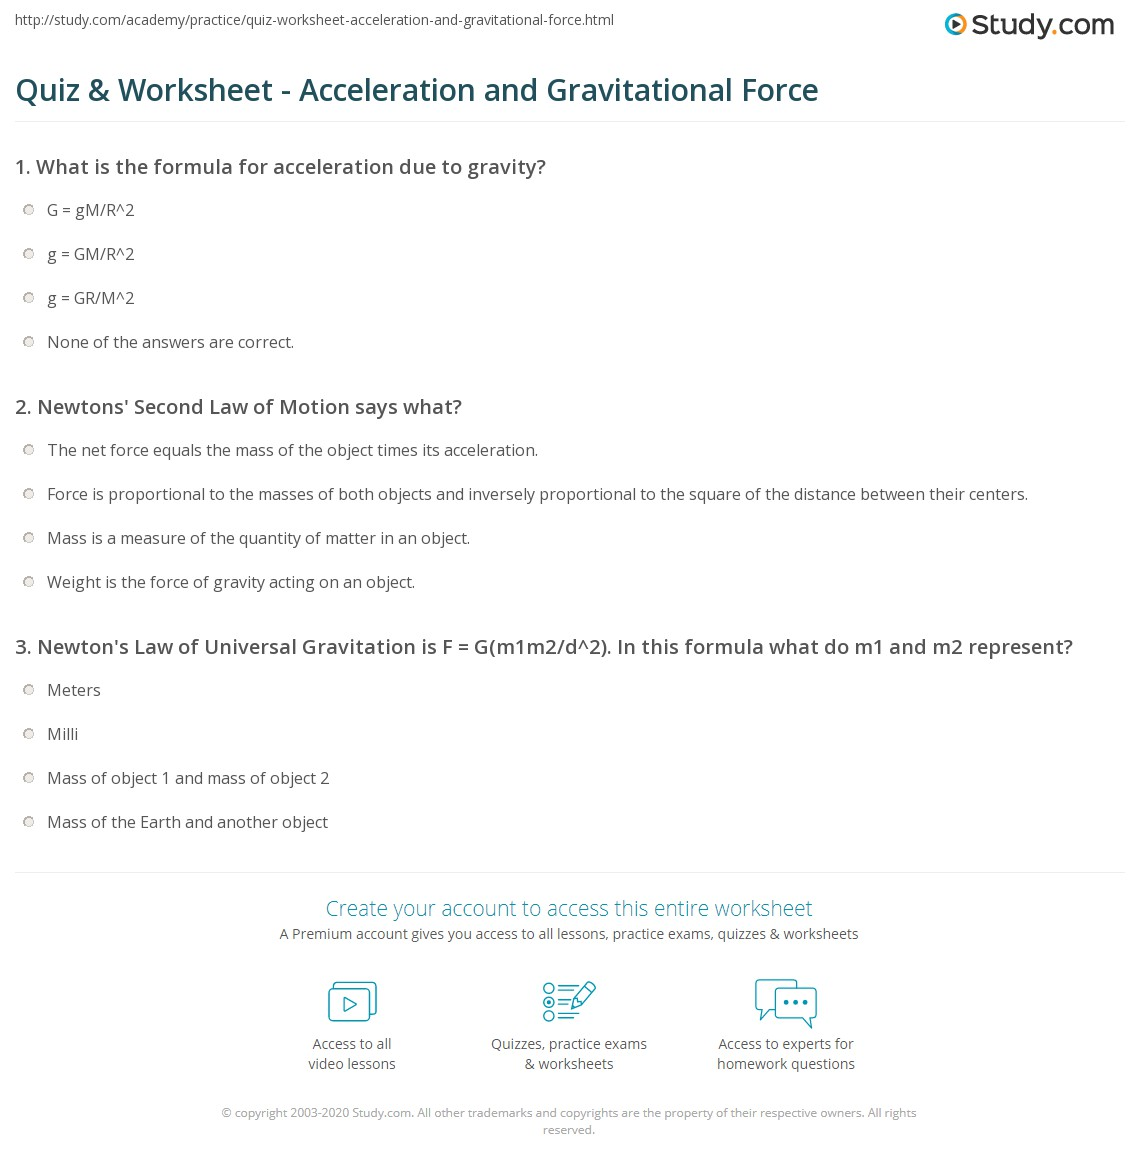 worksheet Accelerated Math Worksheets quiz worksheet acceleration and gravitational force study com print calculating due to gravity formula concept worksheet